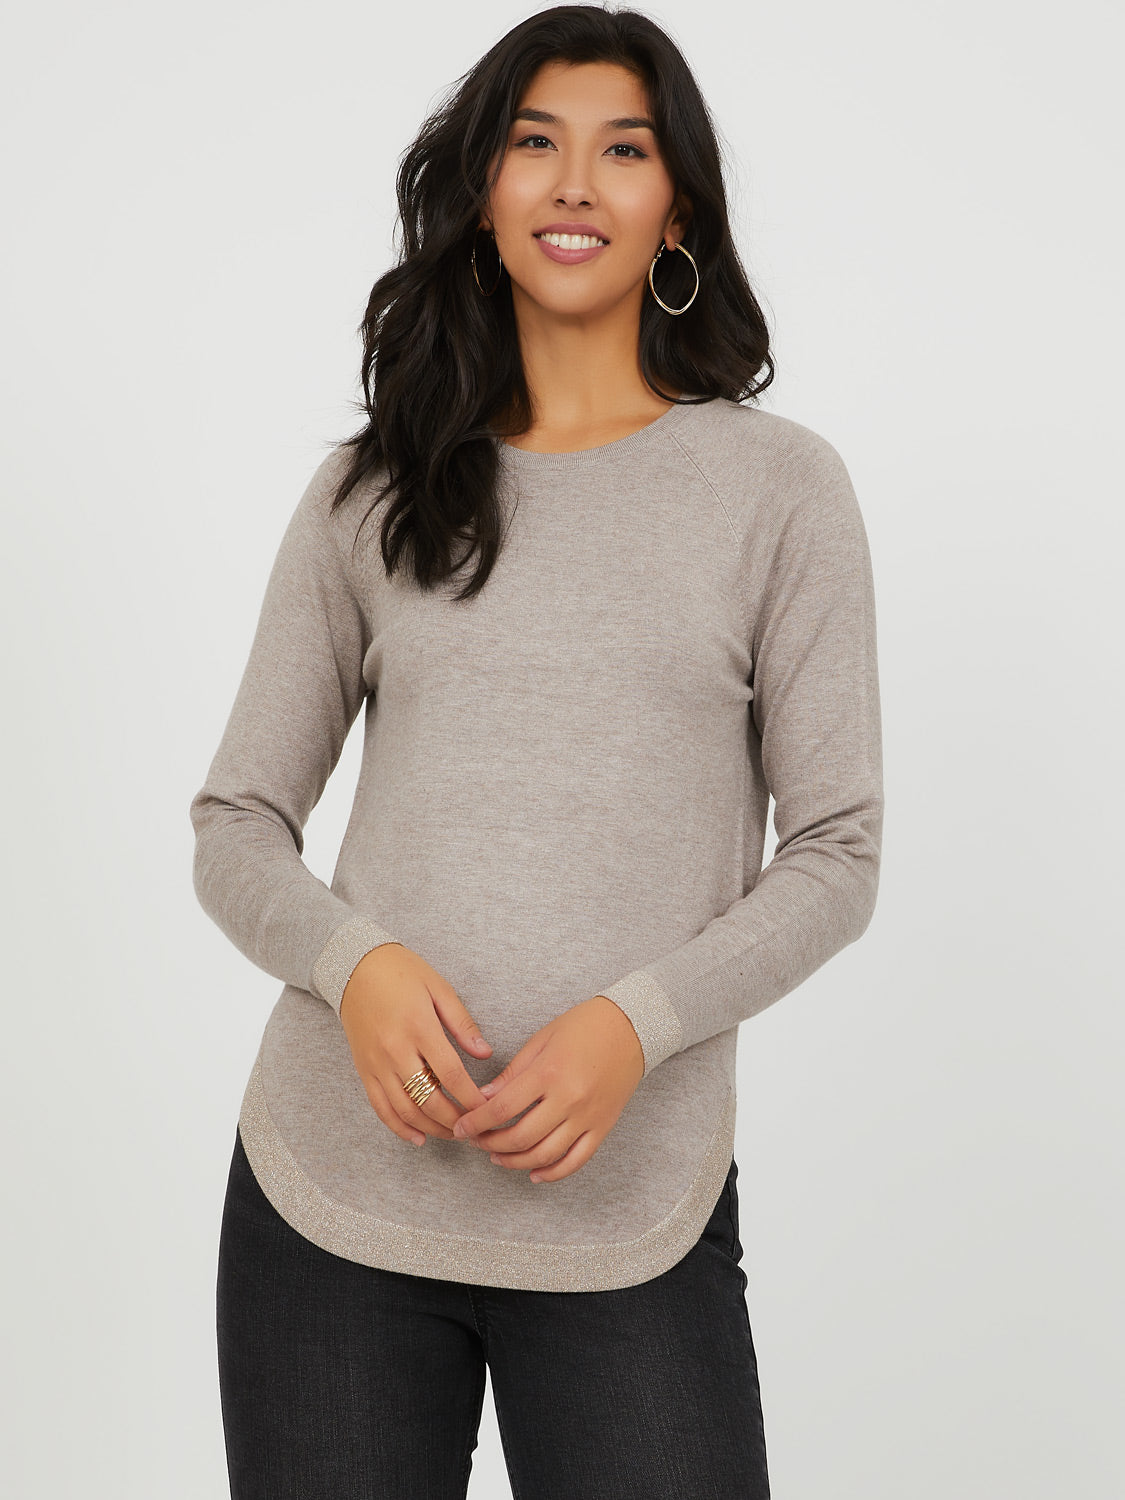 Metallic Trim Crew Neck Sweater